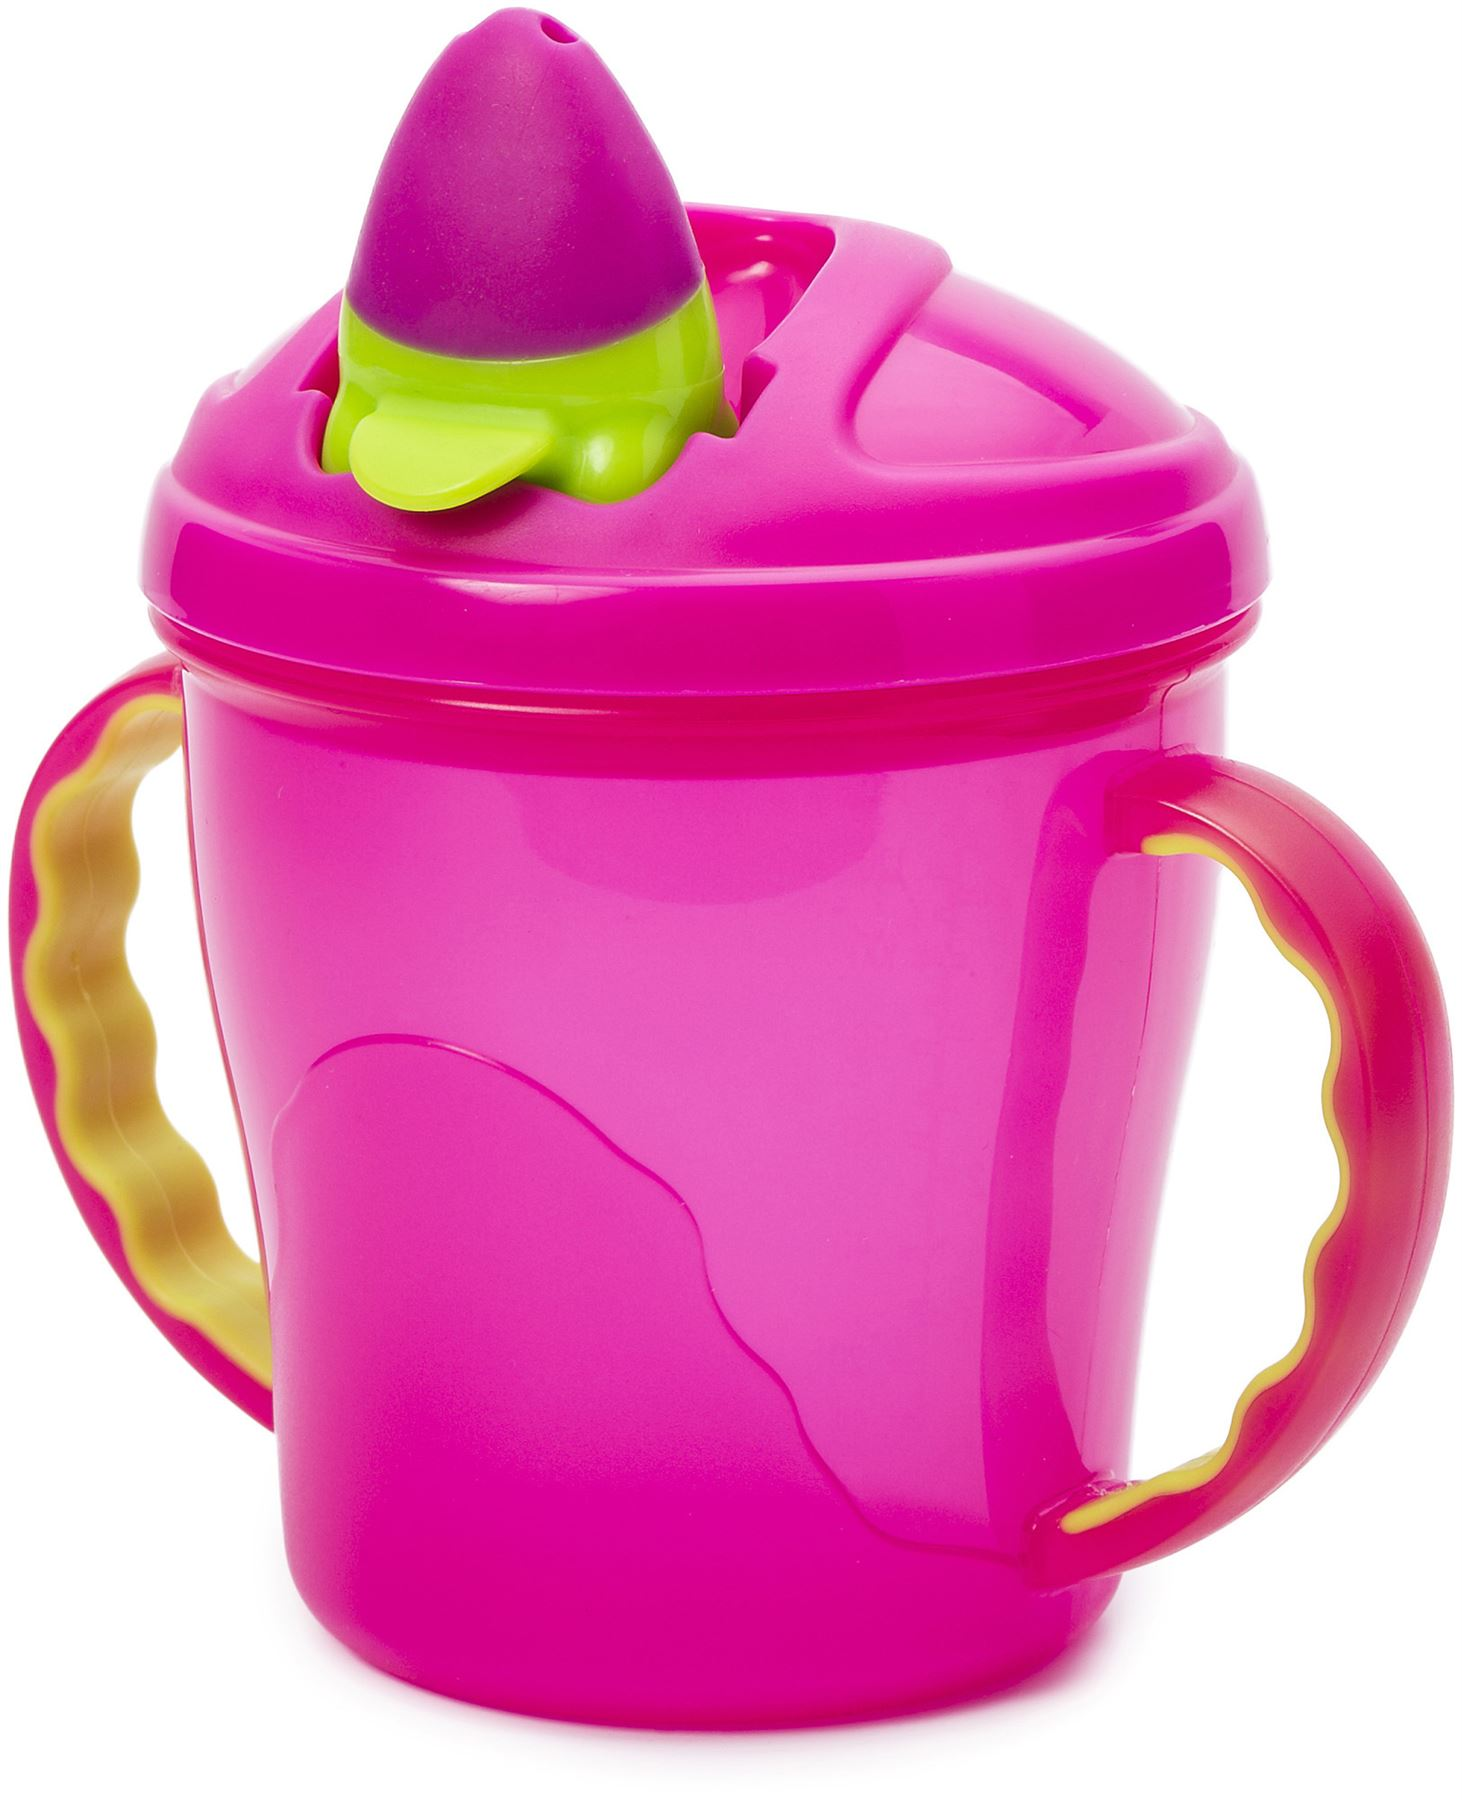 Vital Baby Free Flow Cup With Soft Flip Spout Pink Weaning Cups Feeding Sippy Cups & Mugs Bn